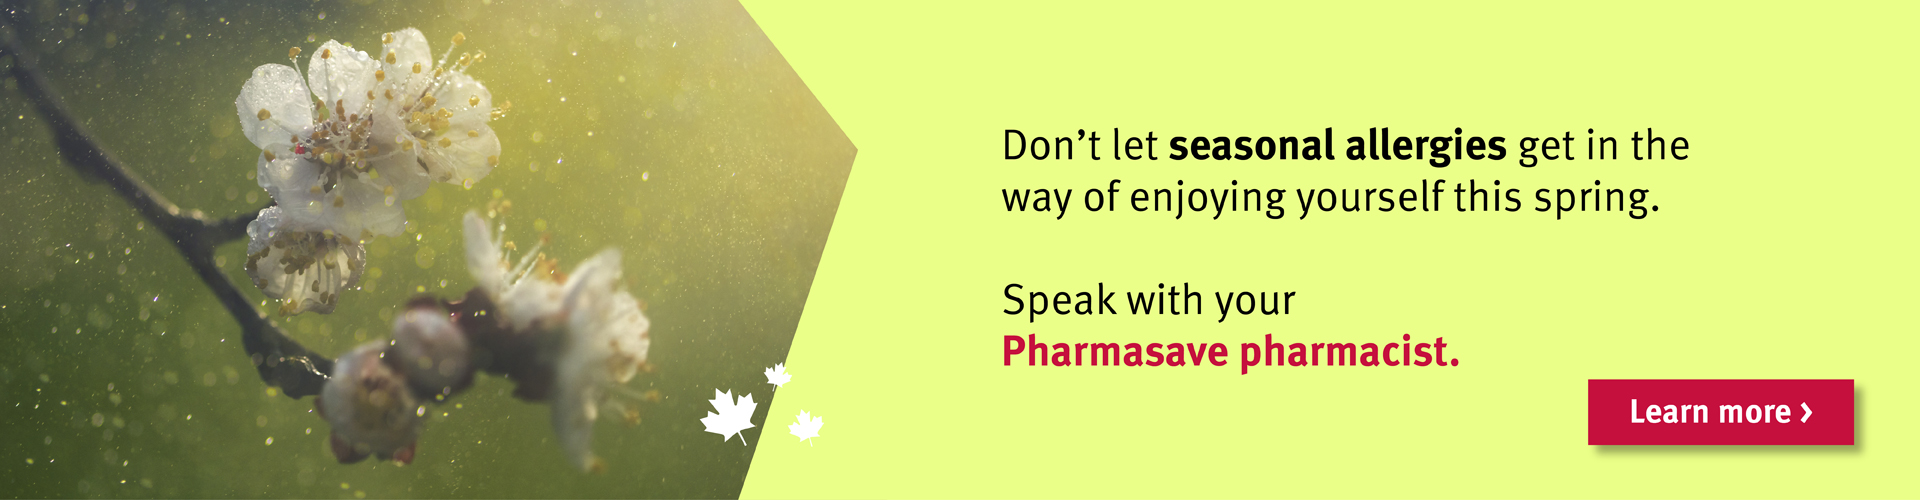 Speak with your Pharmasave pharmacist on how to deal with spring allergies.